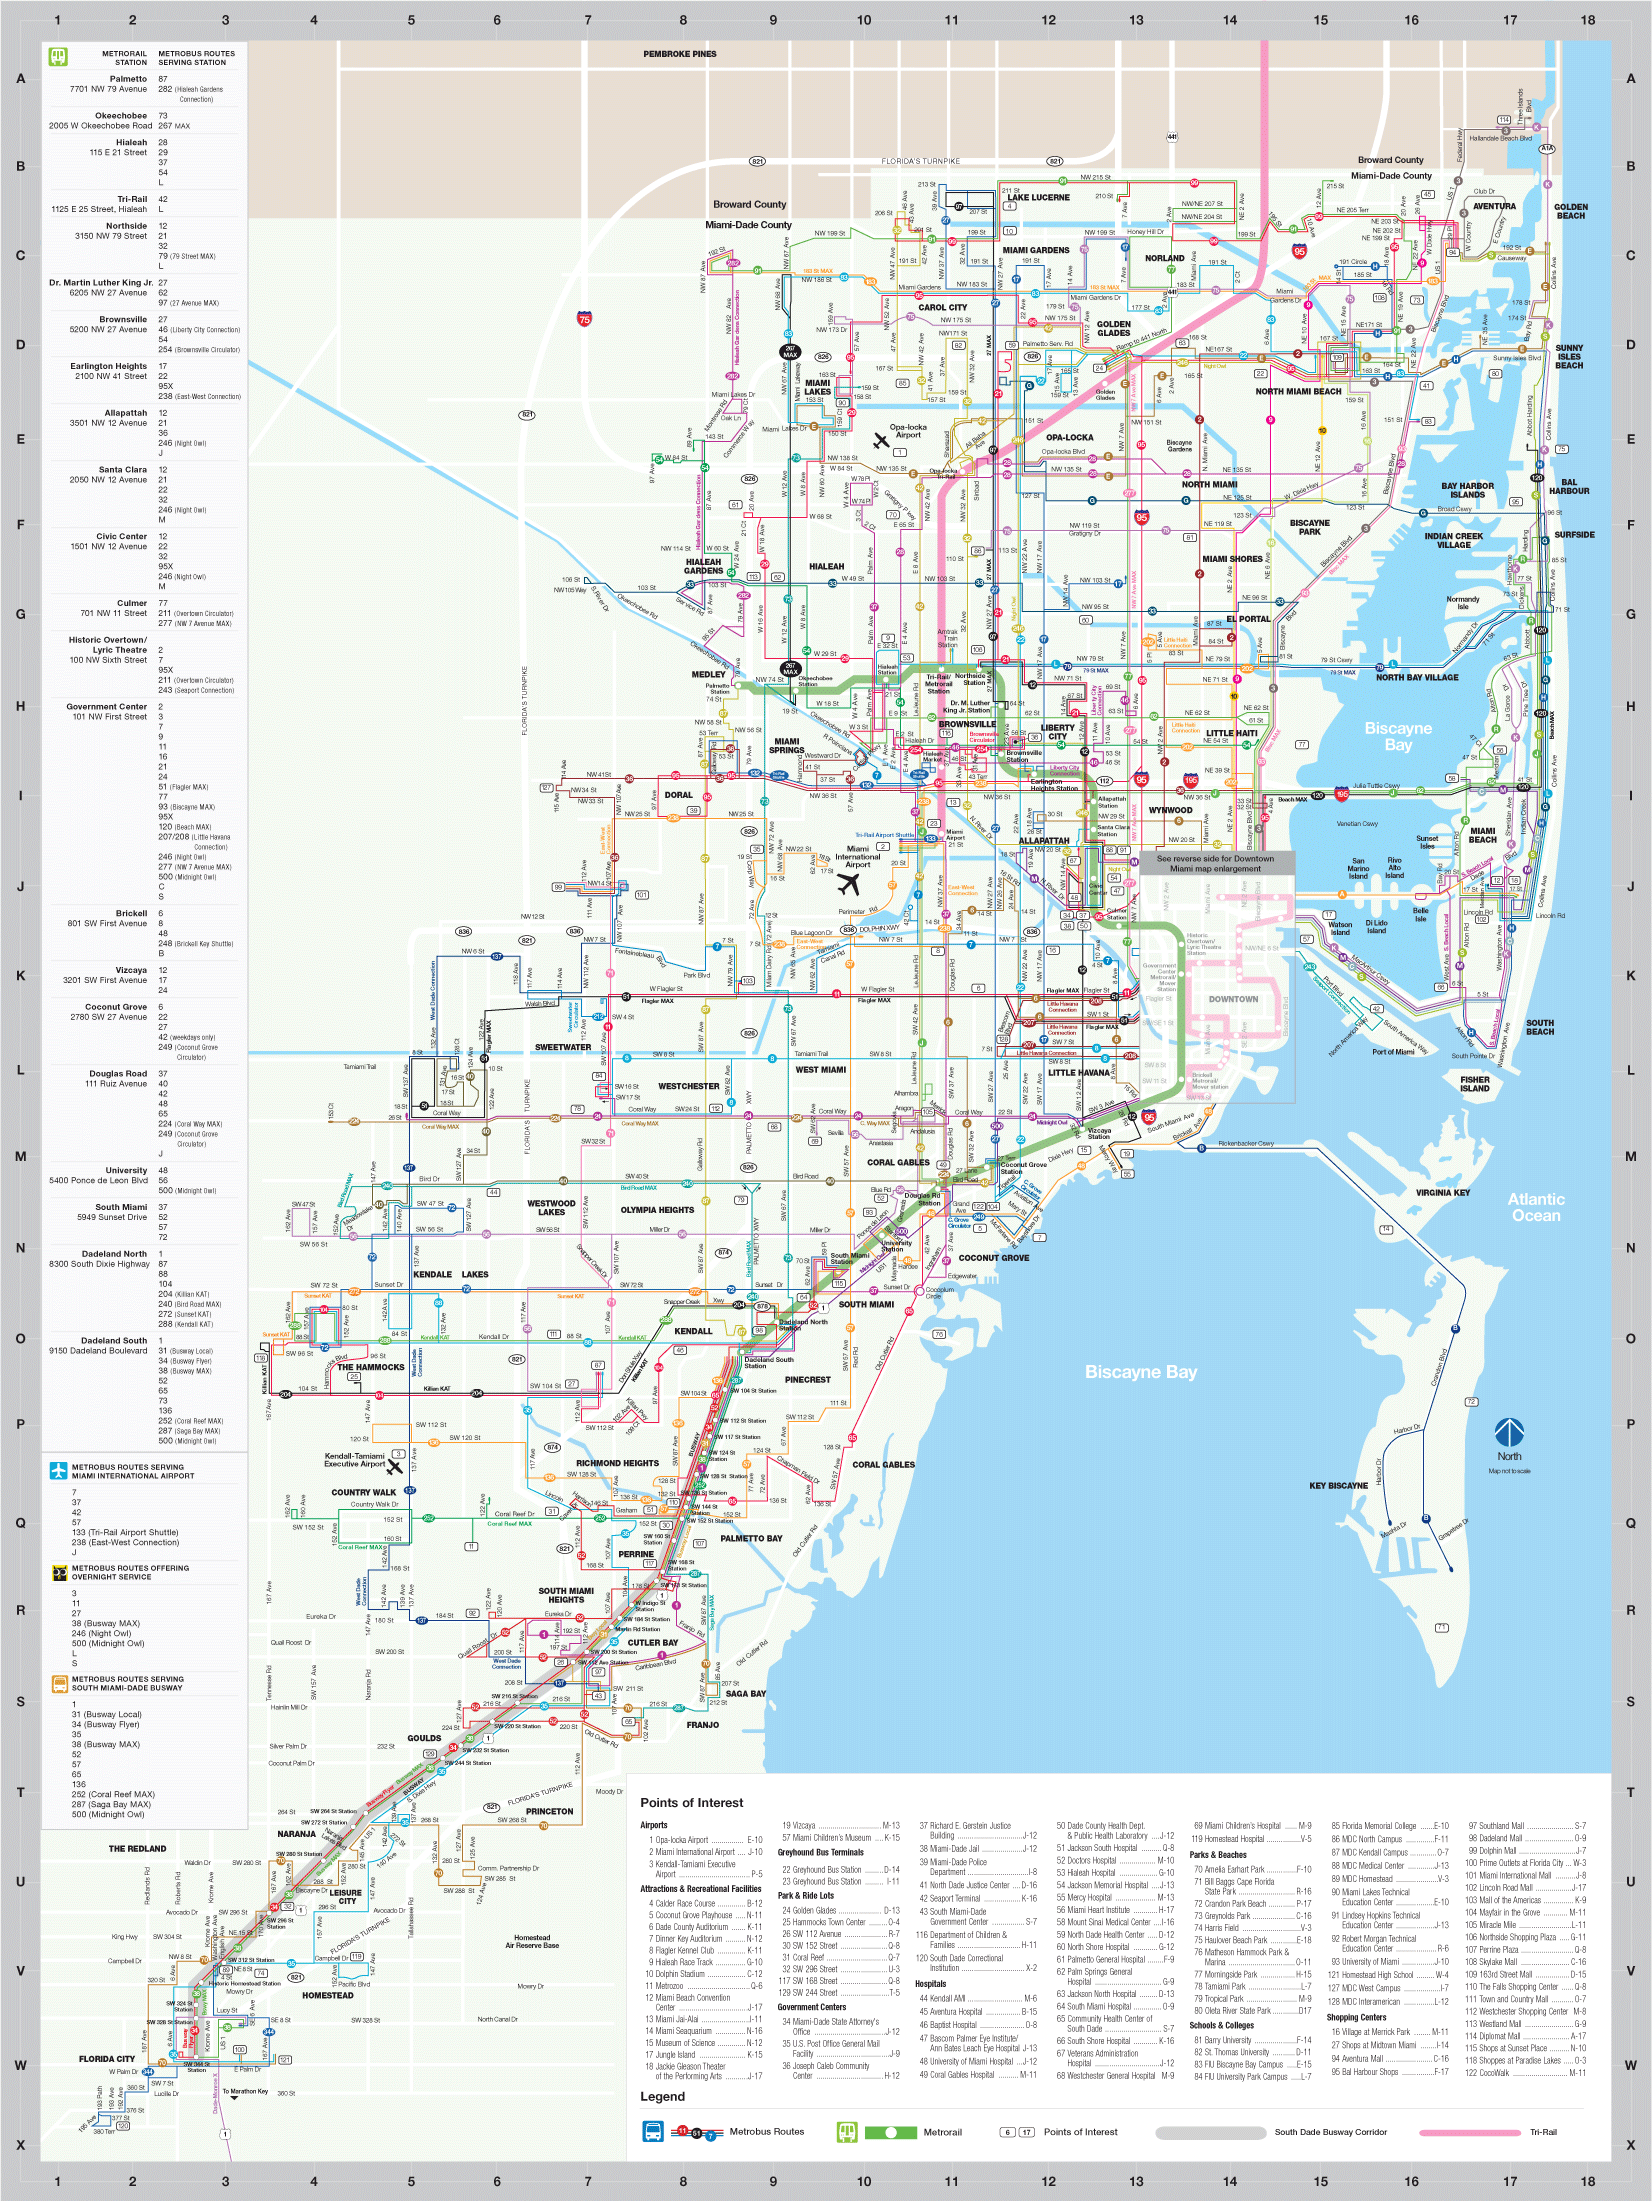 Miami Transport Map (include Metrobus) large map